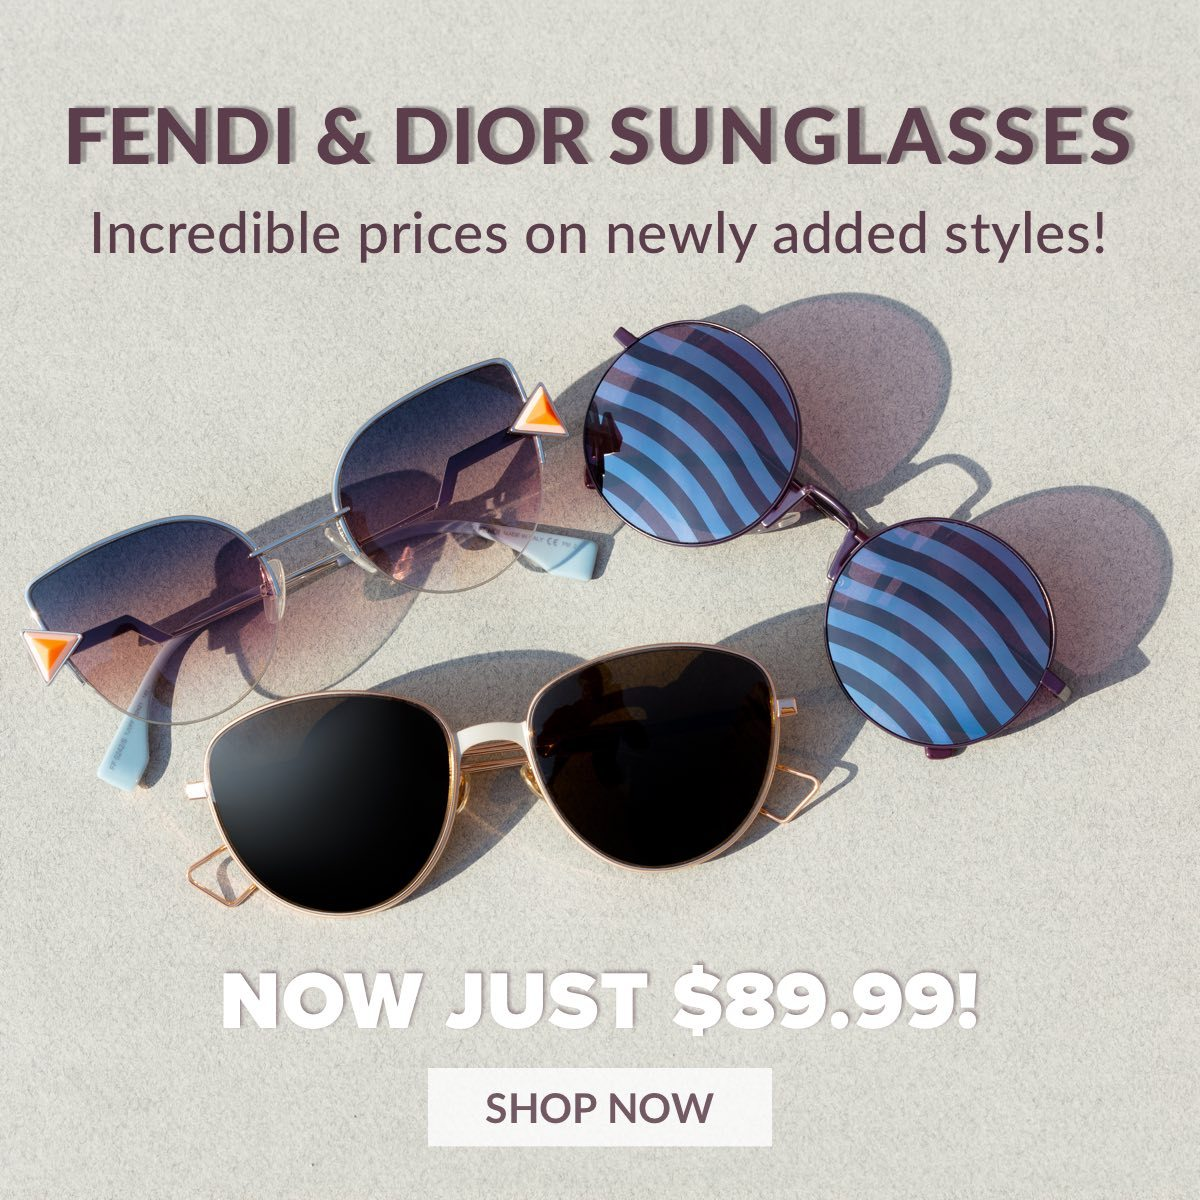 Fendi and Dior Sunglasses Now just $89.99! Incredible prices on newly added styles!